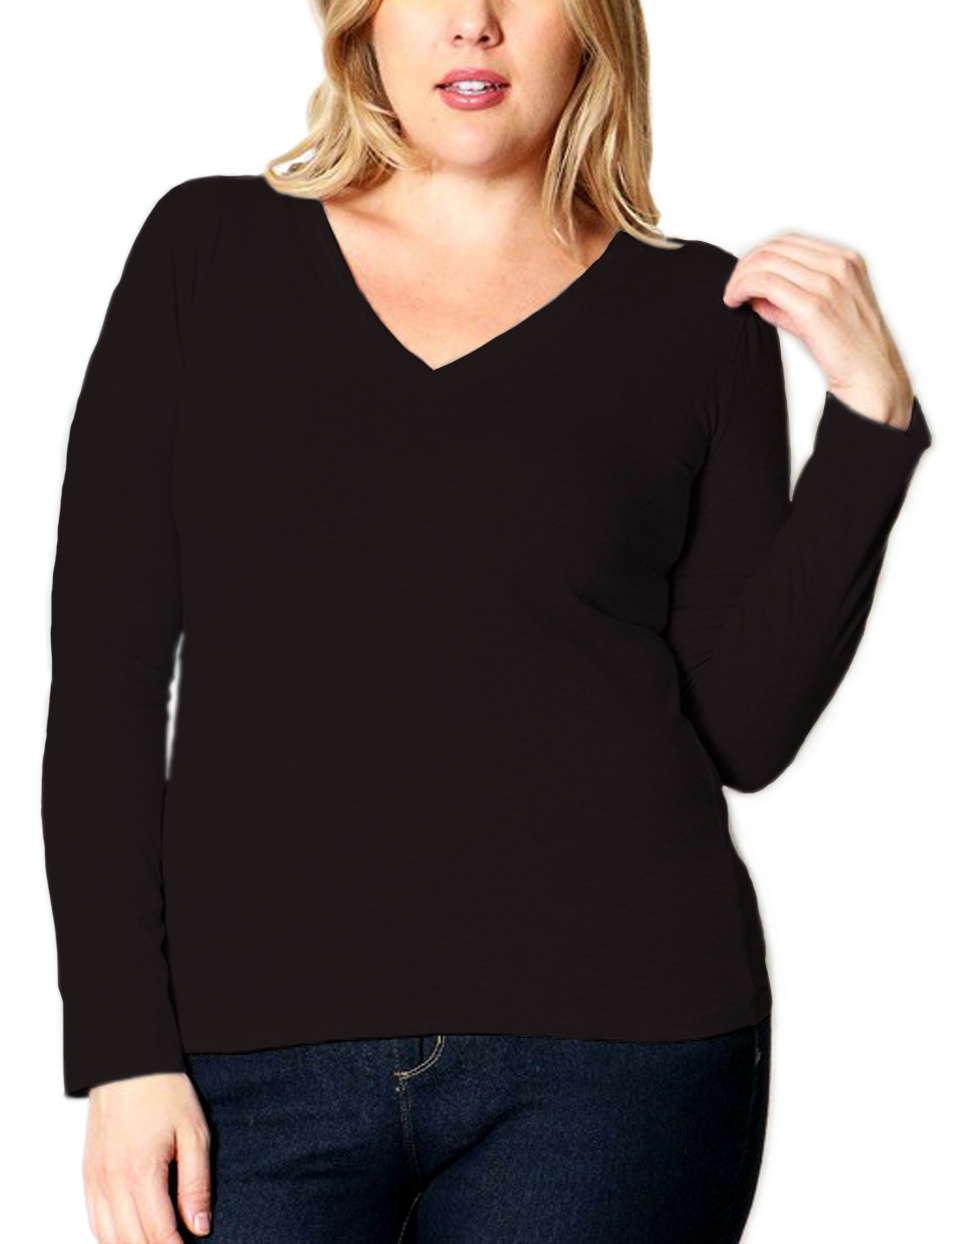 Belle Donne Plus Size T Shirt for Women V Neck Long Sleeves Casual Top - Black/X-Large